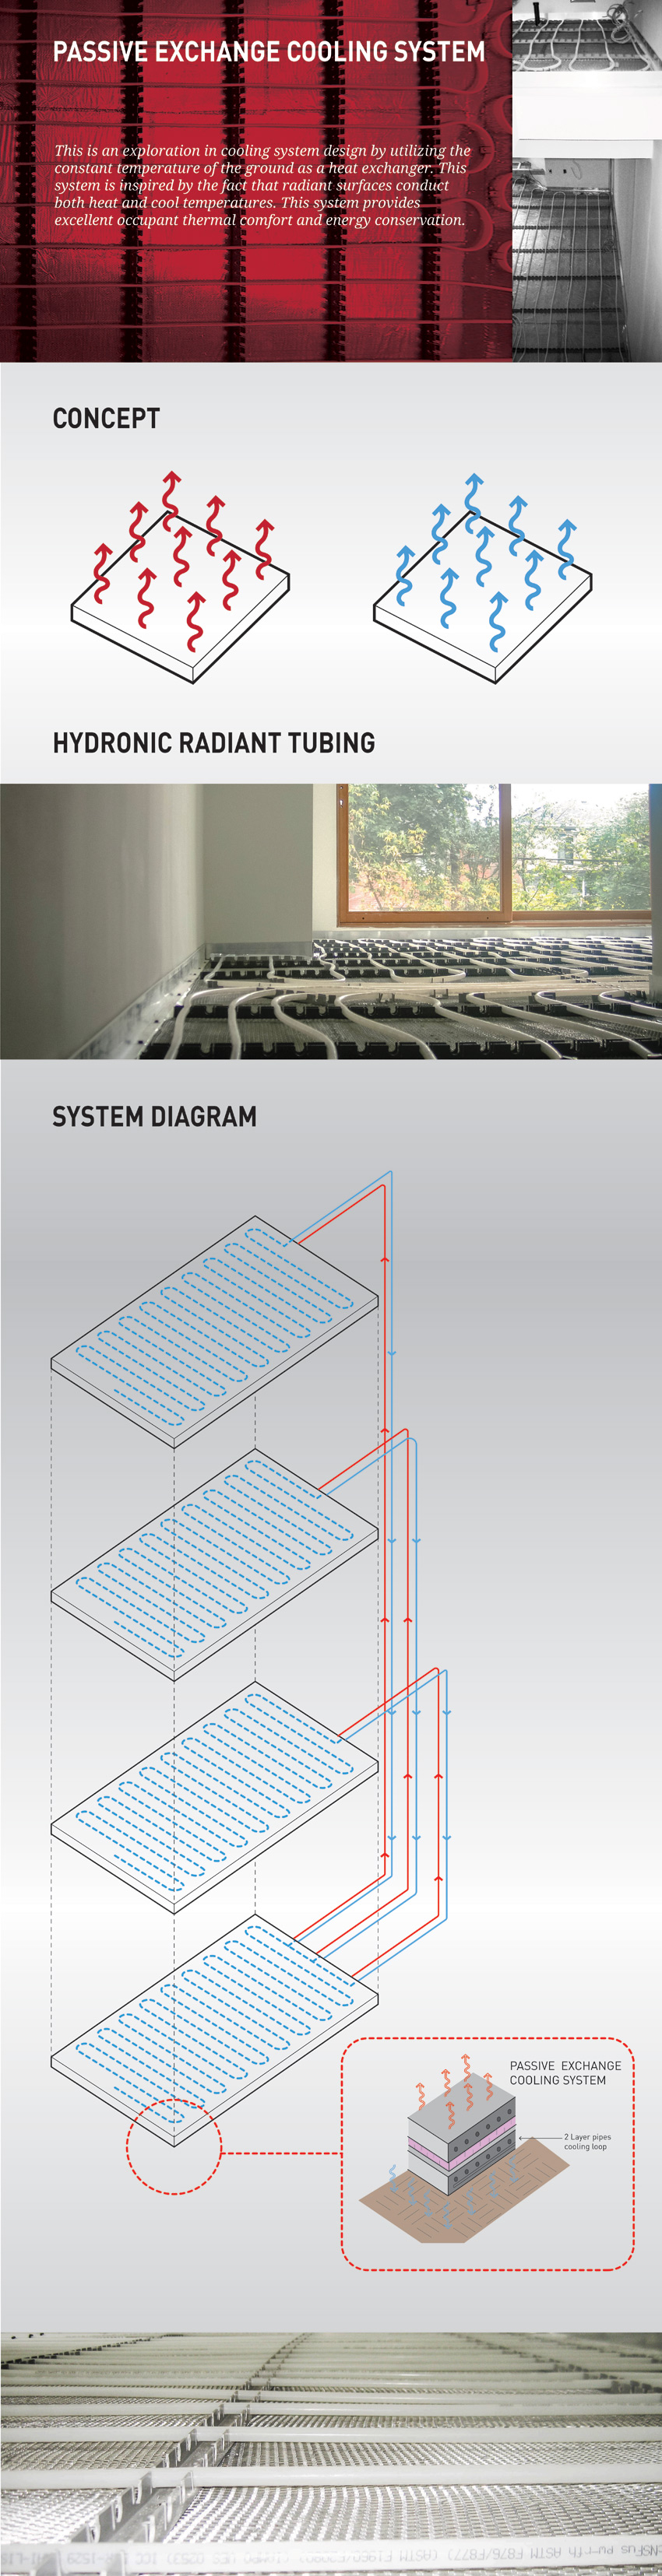 cooling-system2